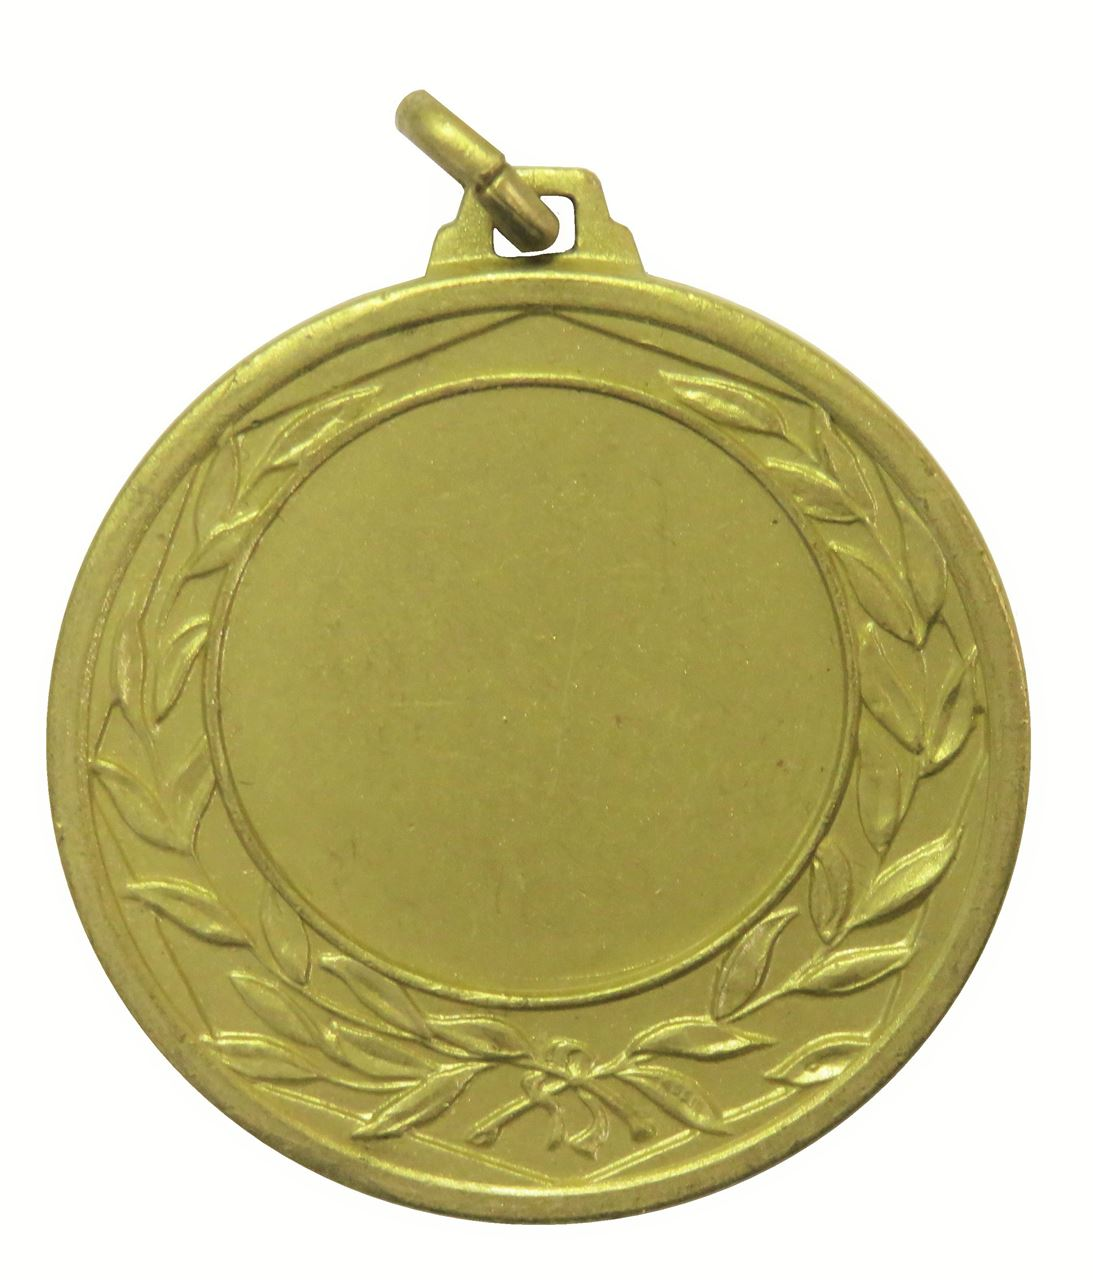 Gold Quality Wreath Medal (size: 42mm) - 5405E